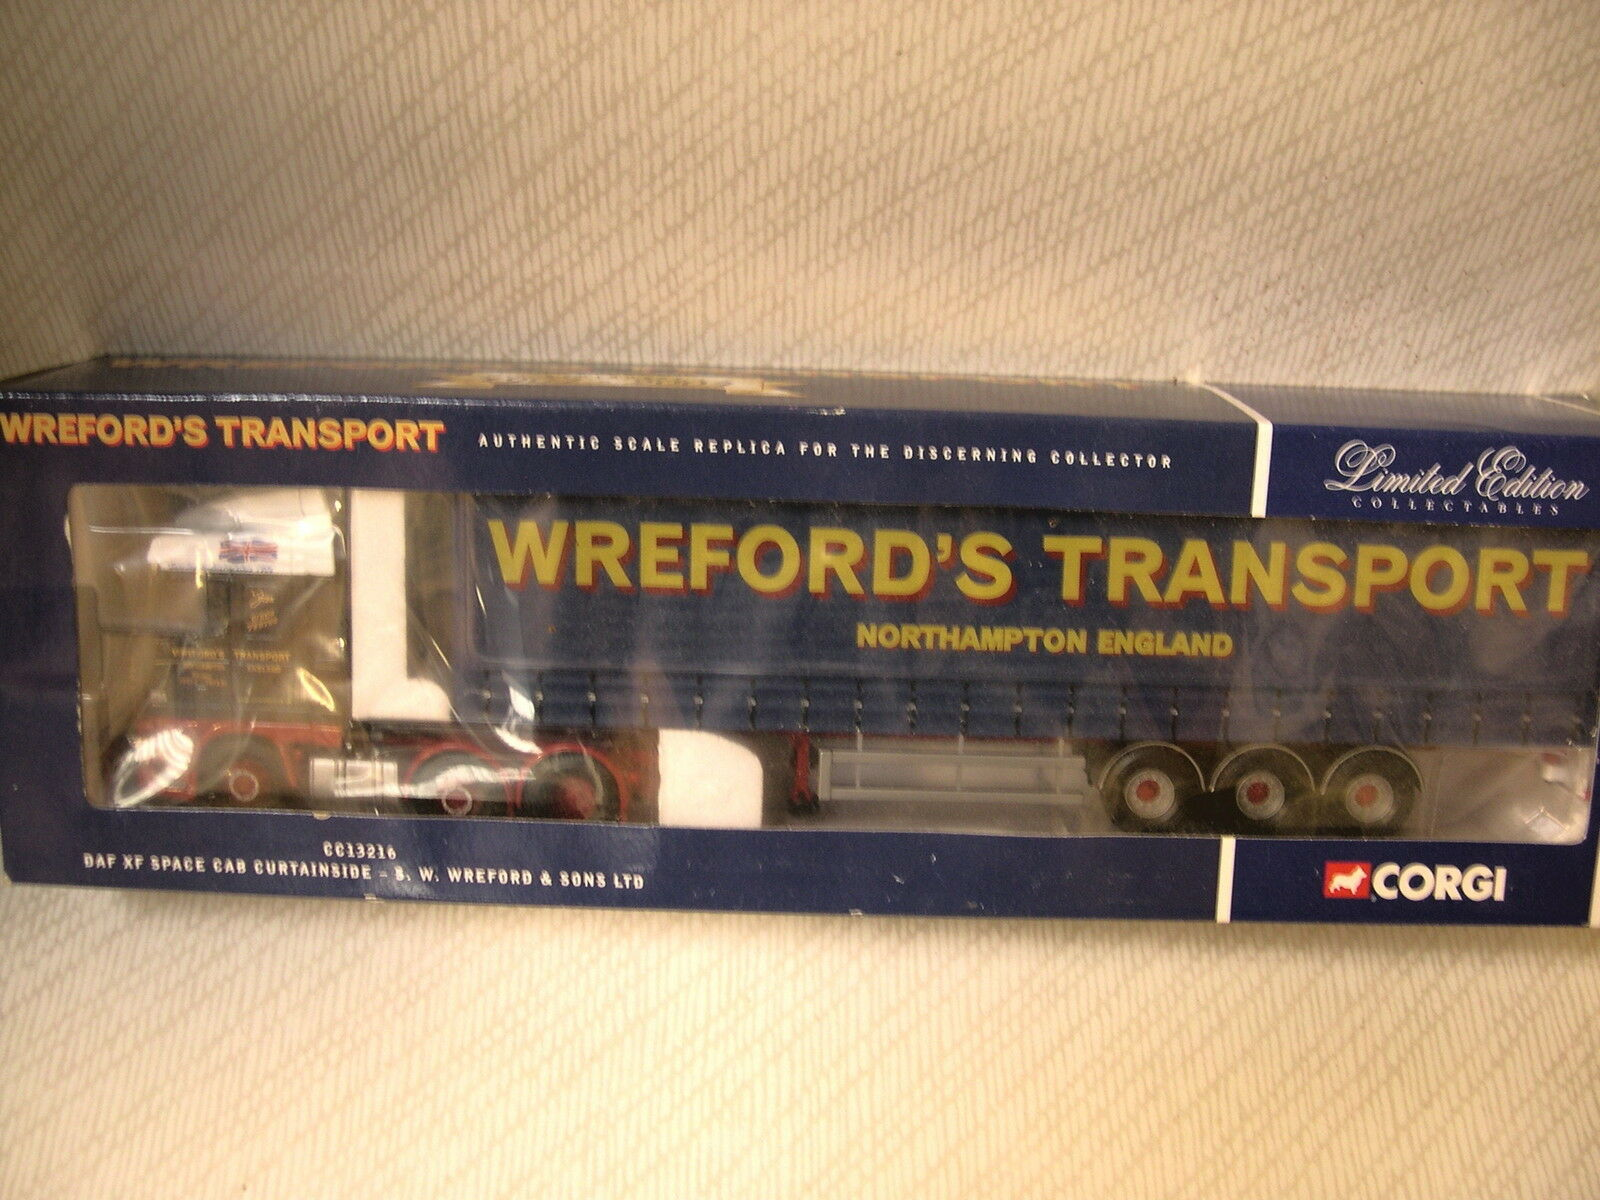 Corgi daf xf space cab curtainsider Wreford de transport REF CC13216